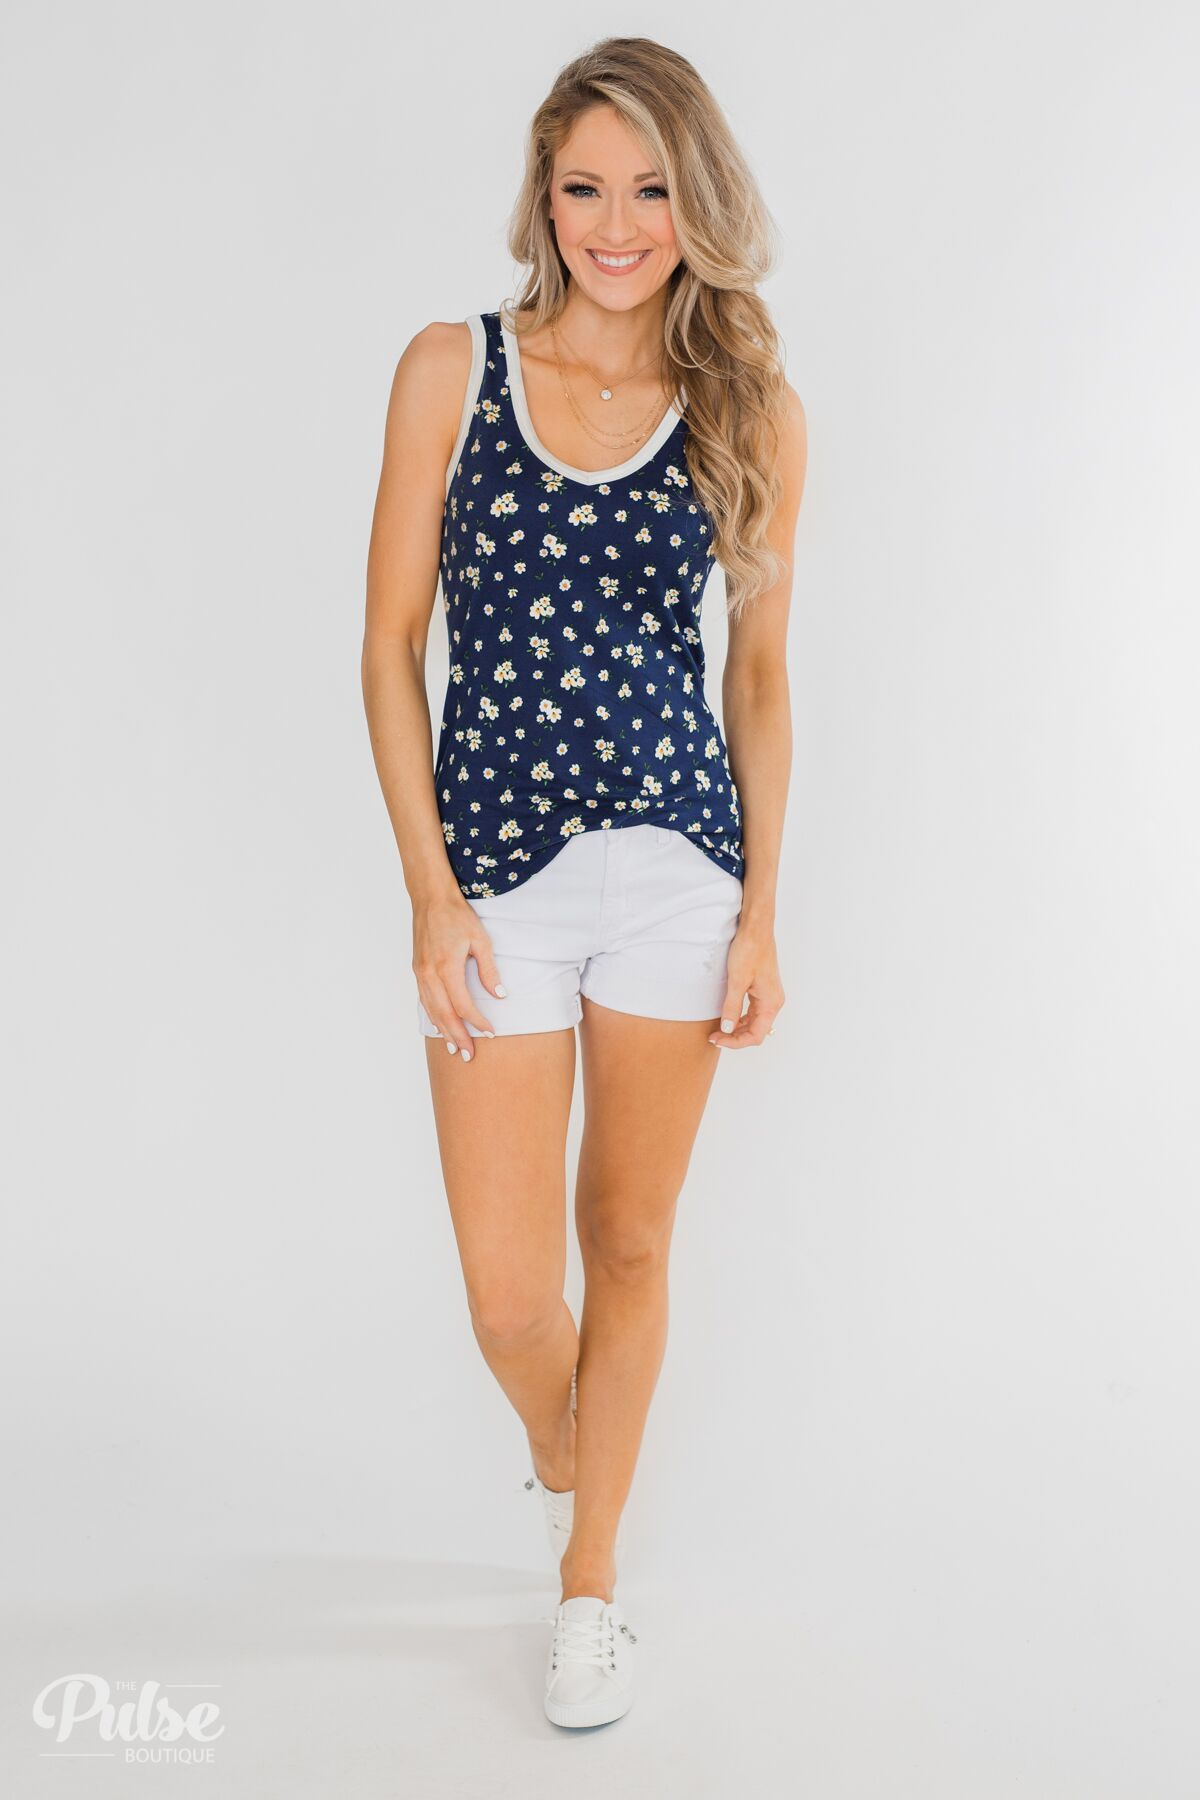 b594b2db39178 Walk Through The Wildflowers V-Neck Tank Top- Navy Outfit – The Pulse  Boutique